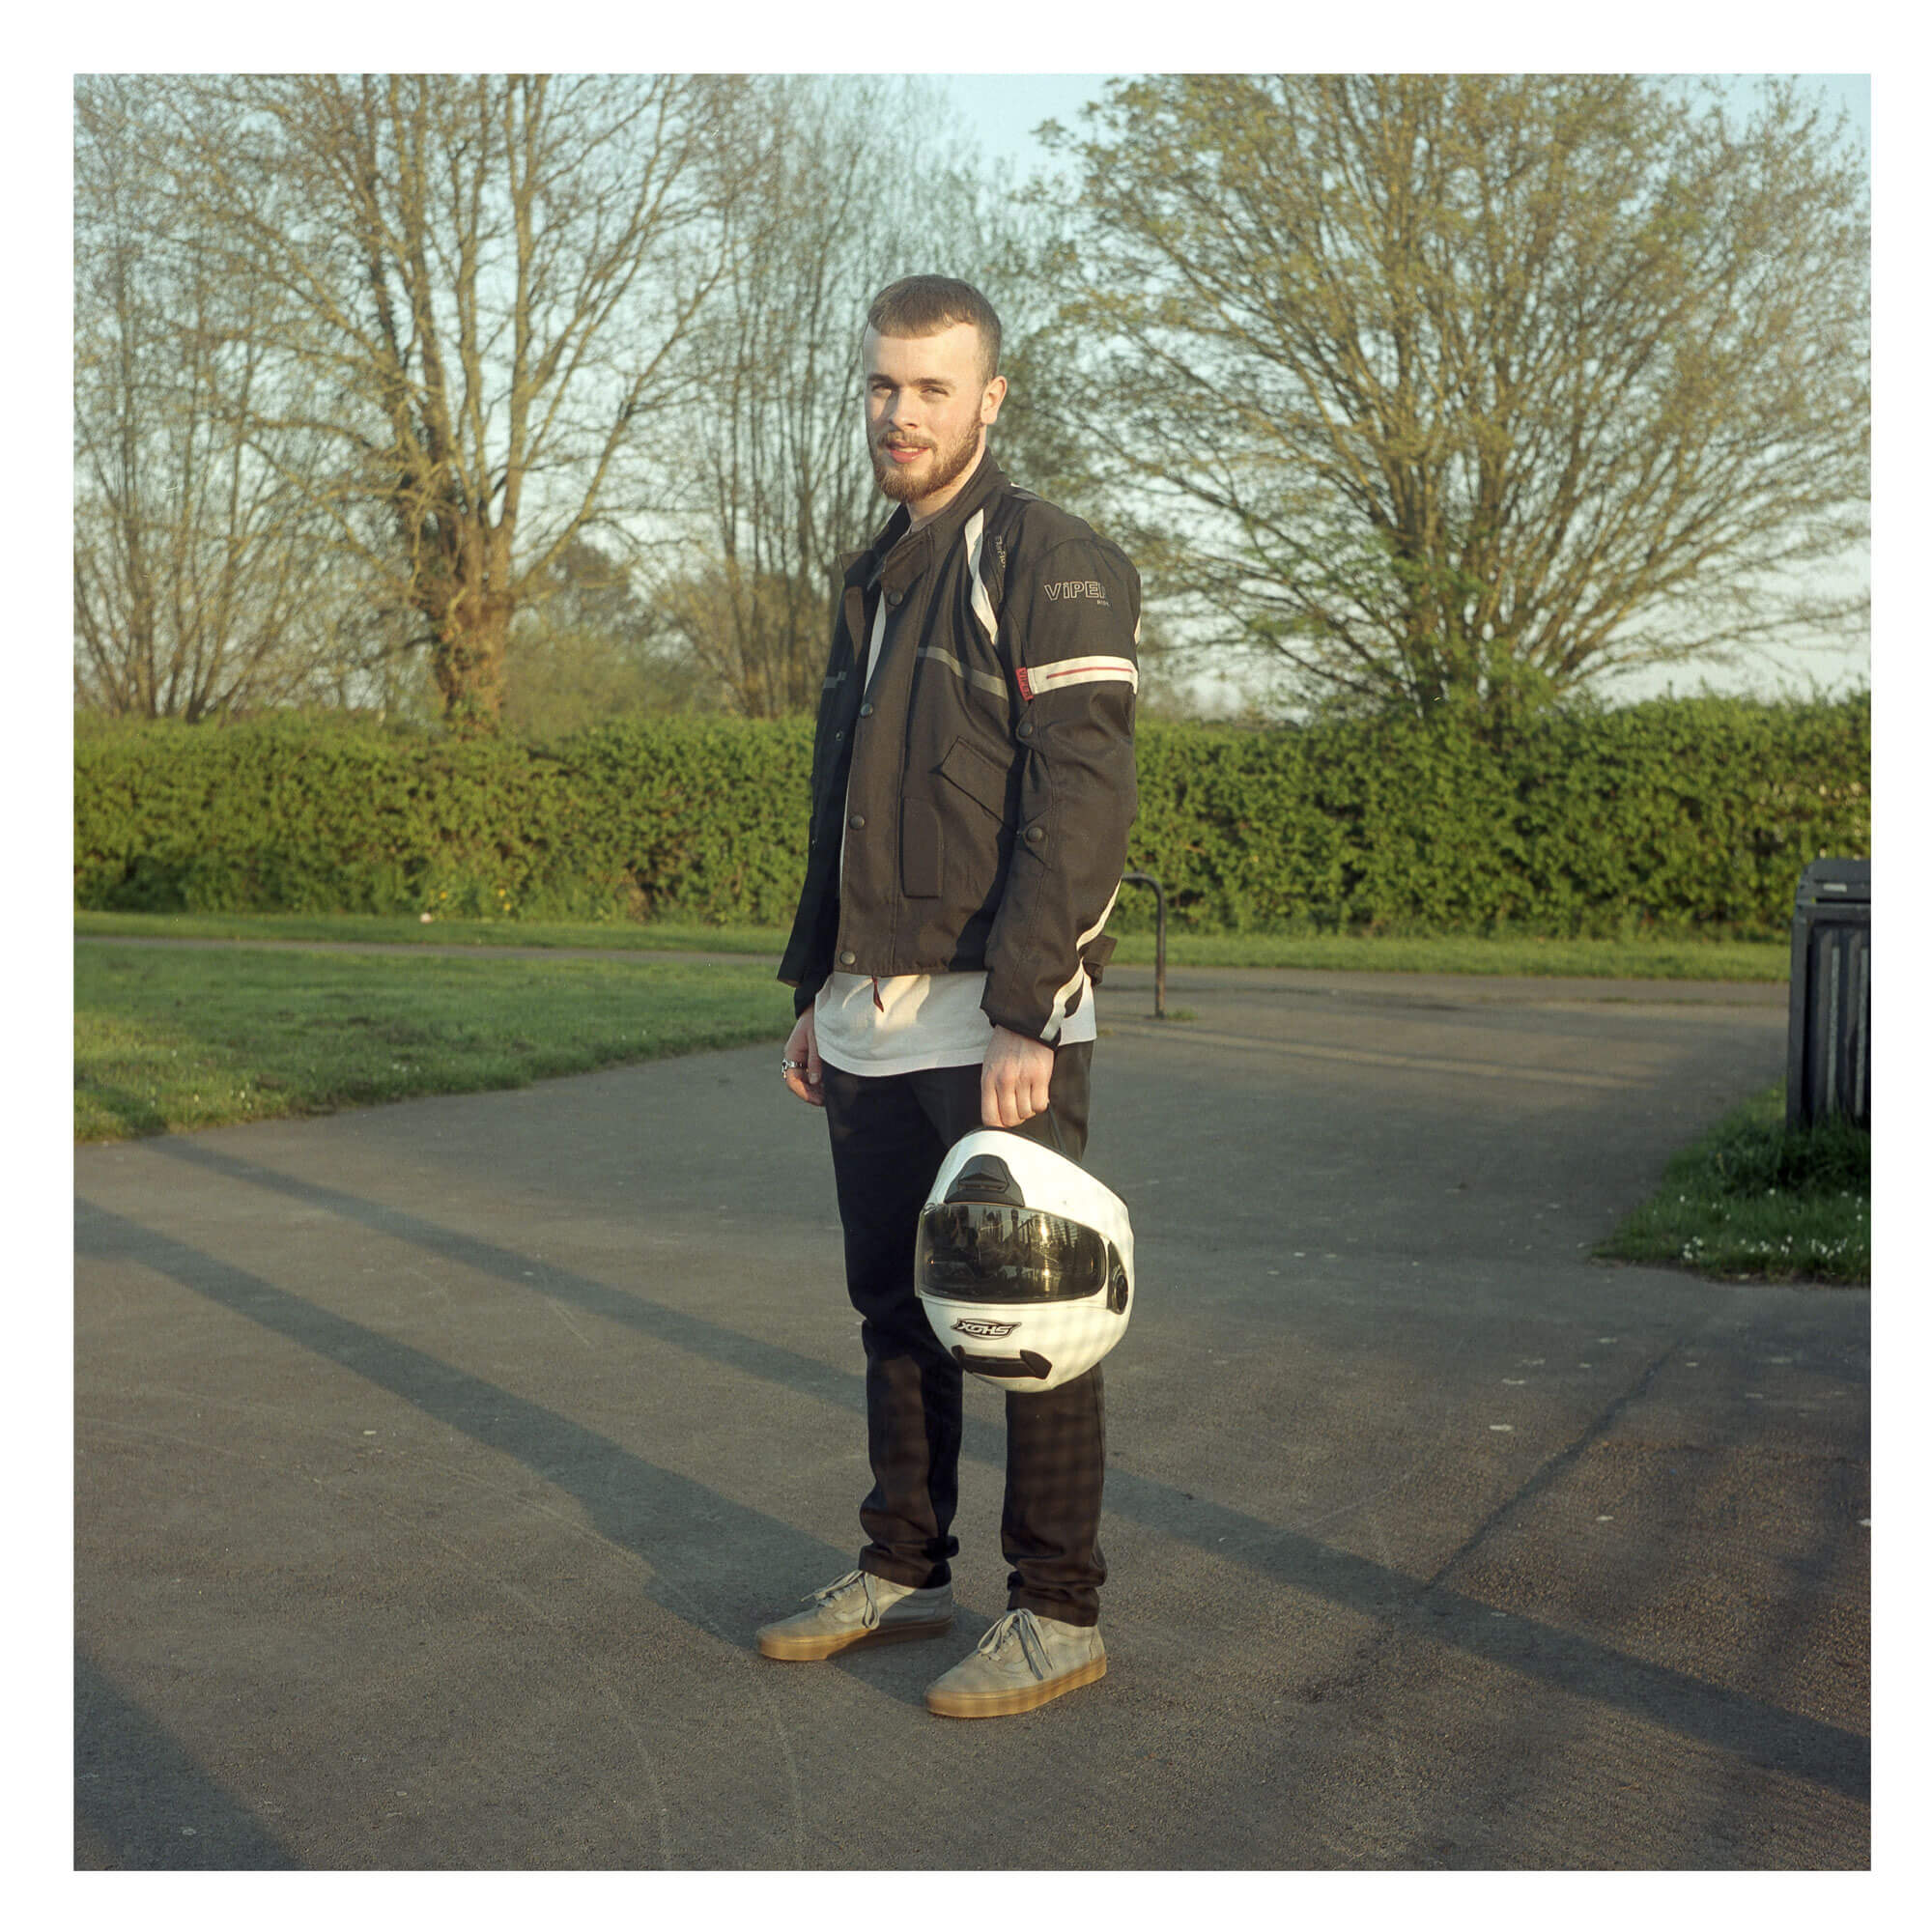 Fergus Riley no ball games photography photograph documentary medium format kodak portra ilford canon Nikon journalism